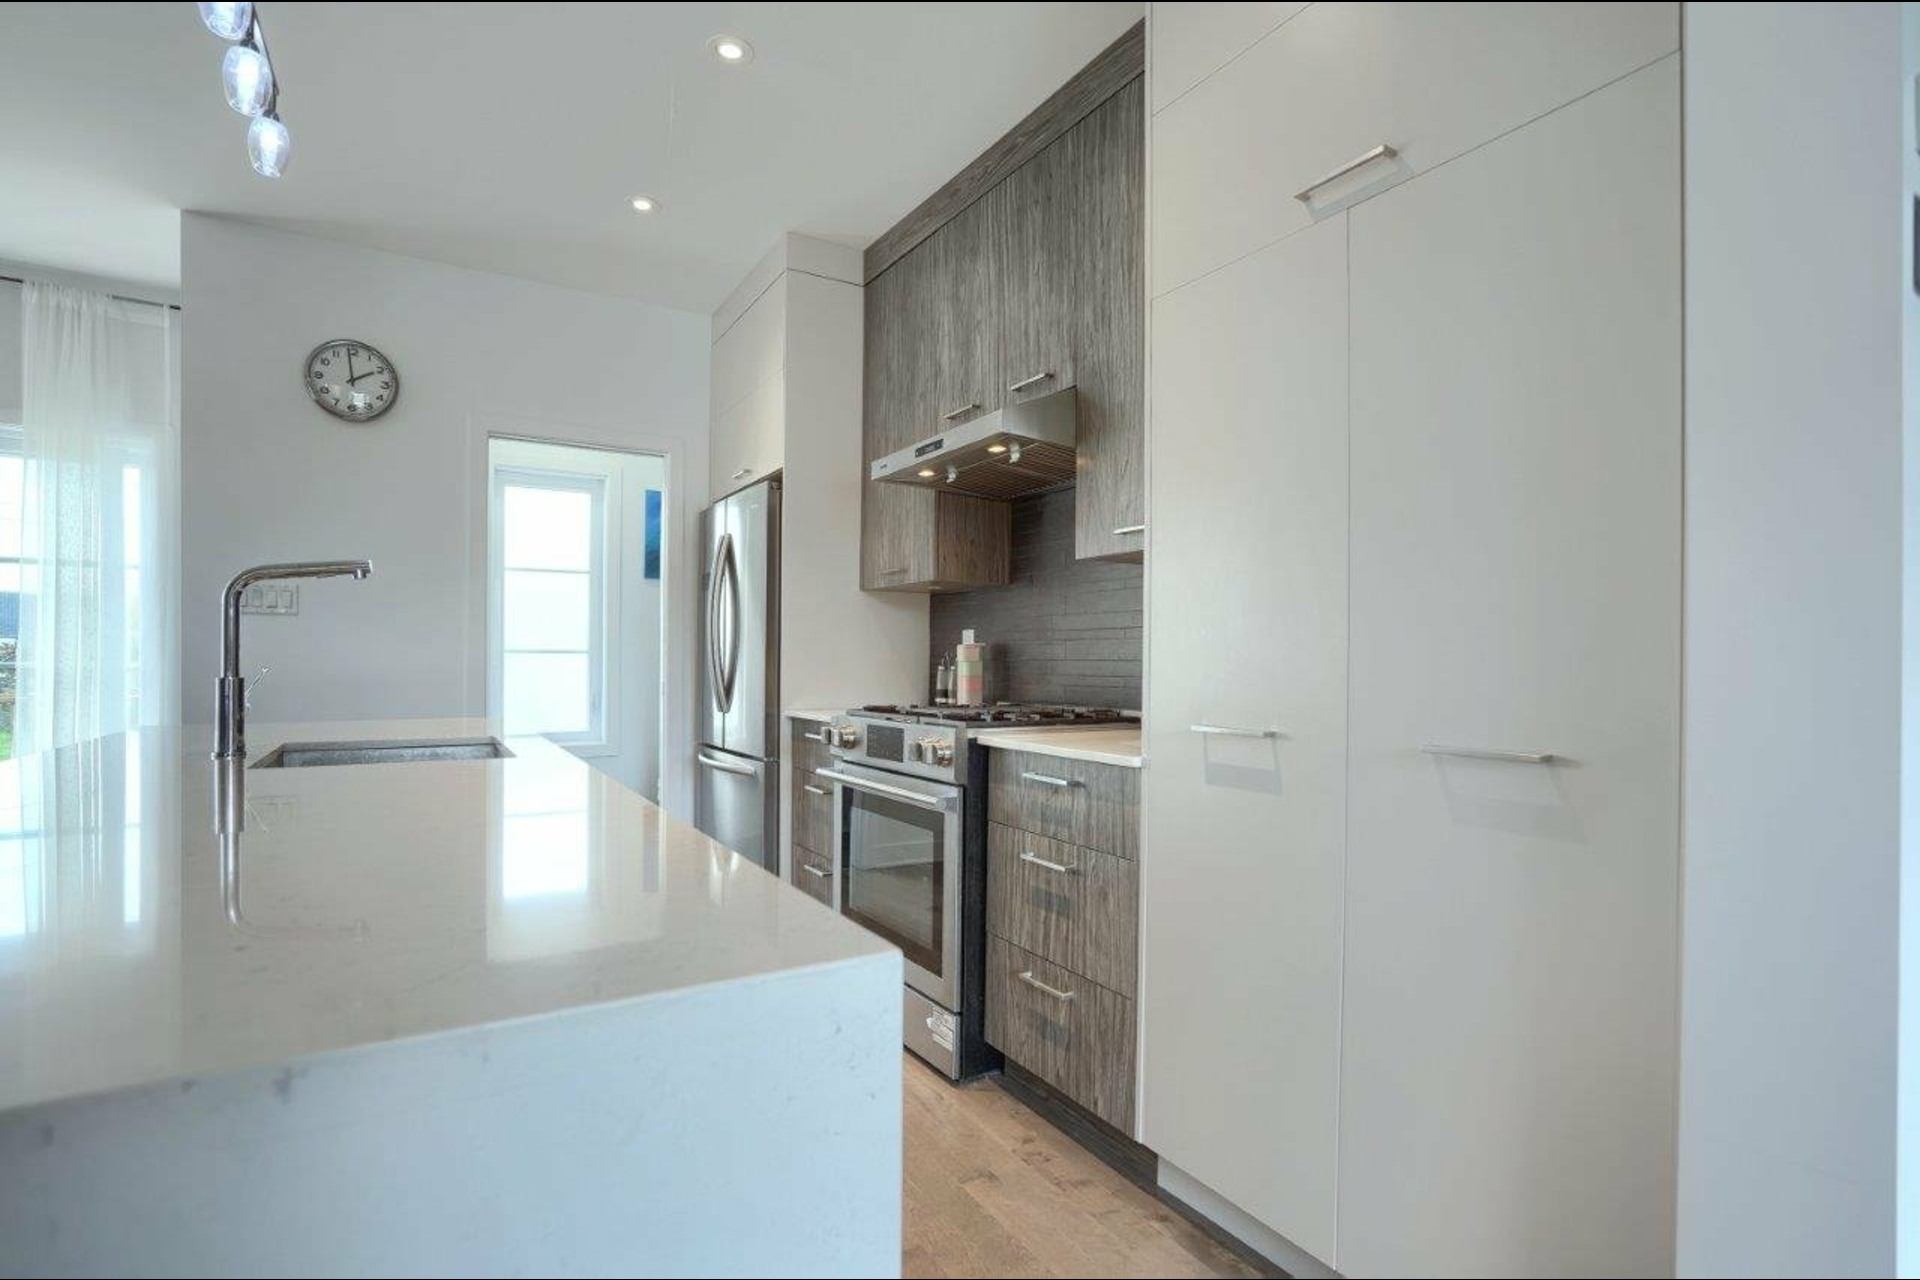 image 5 - House For sale Brossard - 10 rooms